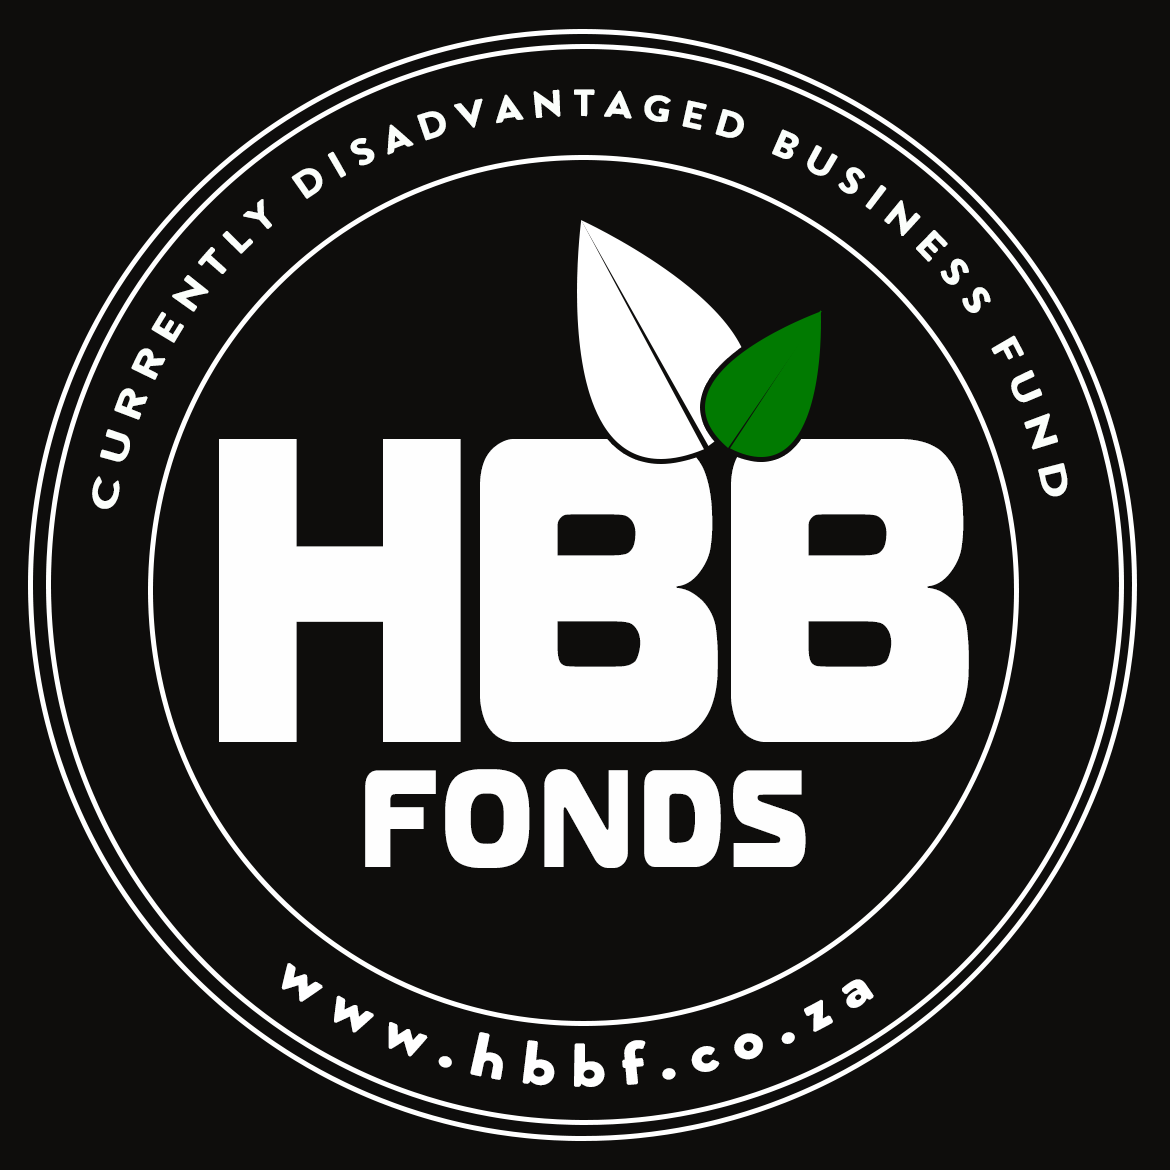 HBBF Currently Disadvantaged Business Fund